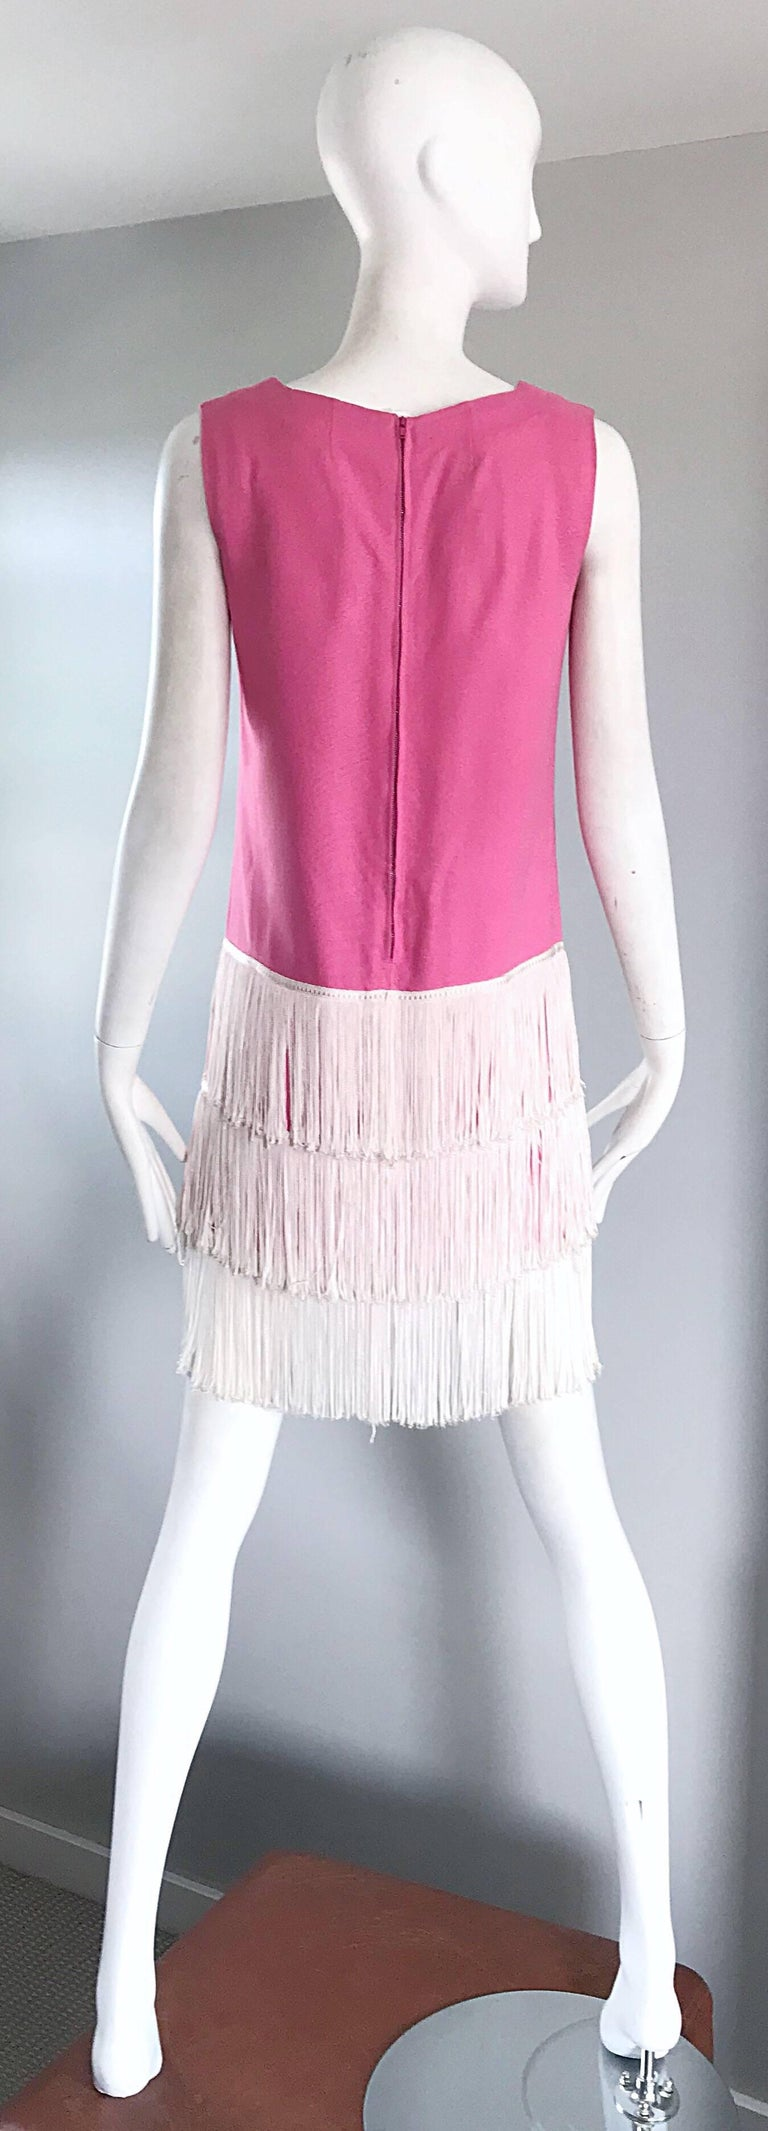 1960s does 1920s Bubblegum Pink + White Fringe Vintage 60s Flapper Shift Dress For Sale 2